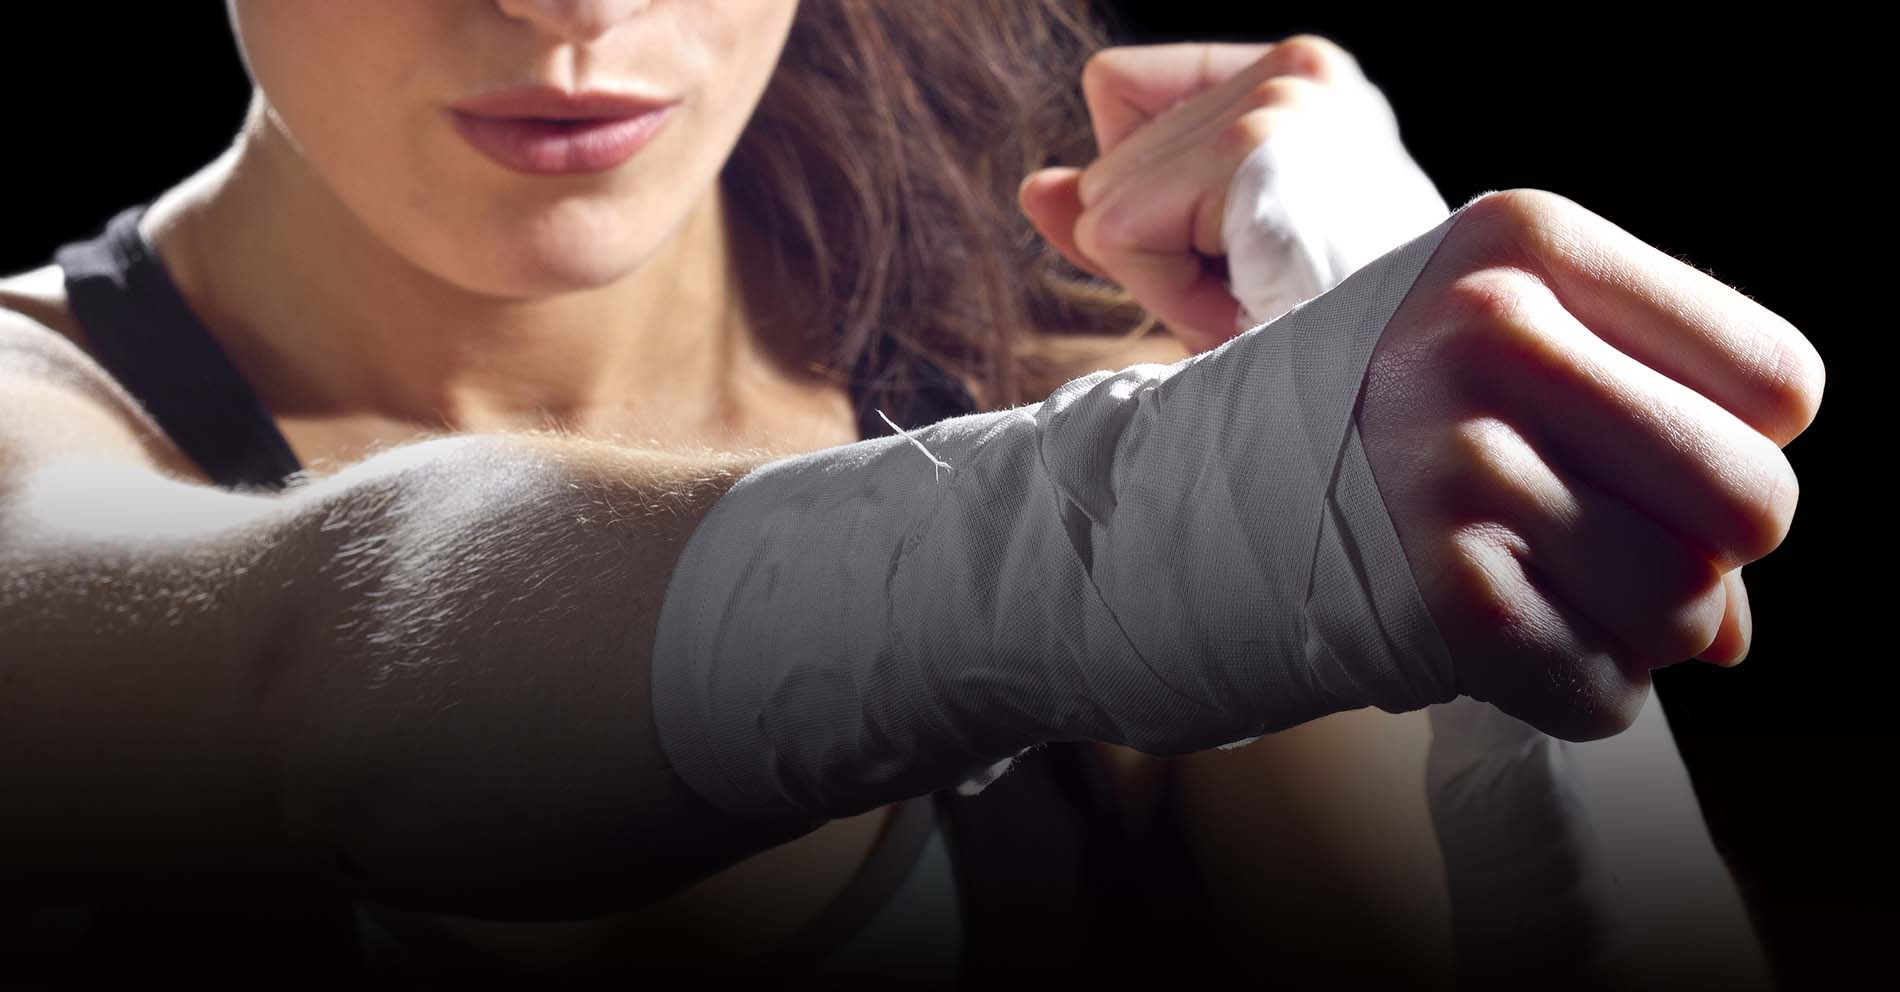 Women's Safety: Self-Defense Tips and Why Is It Important